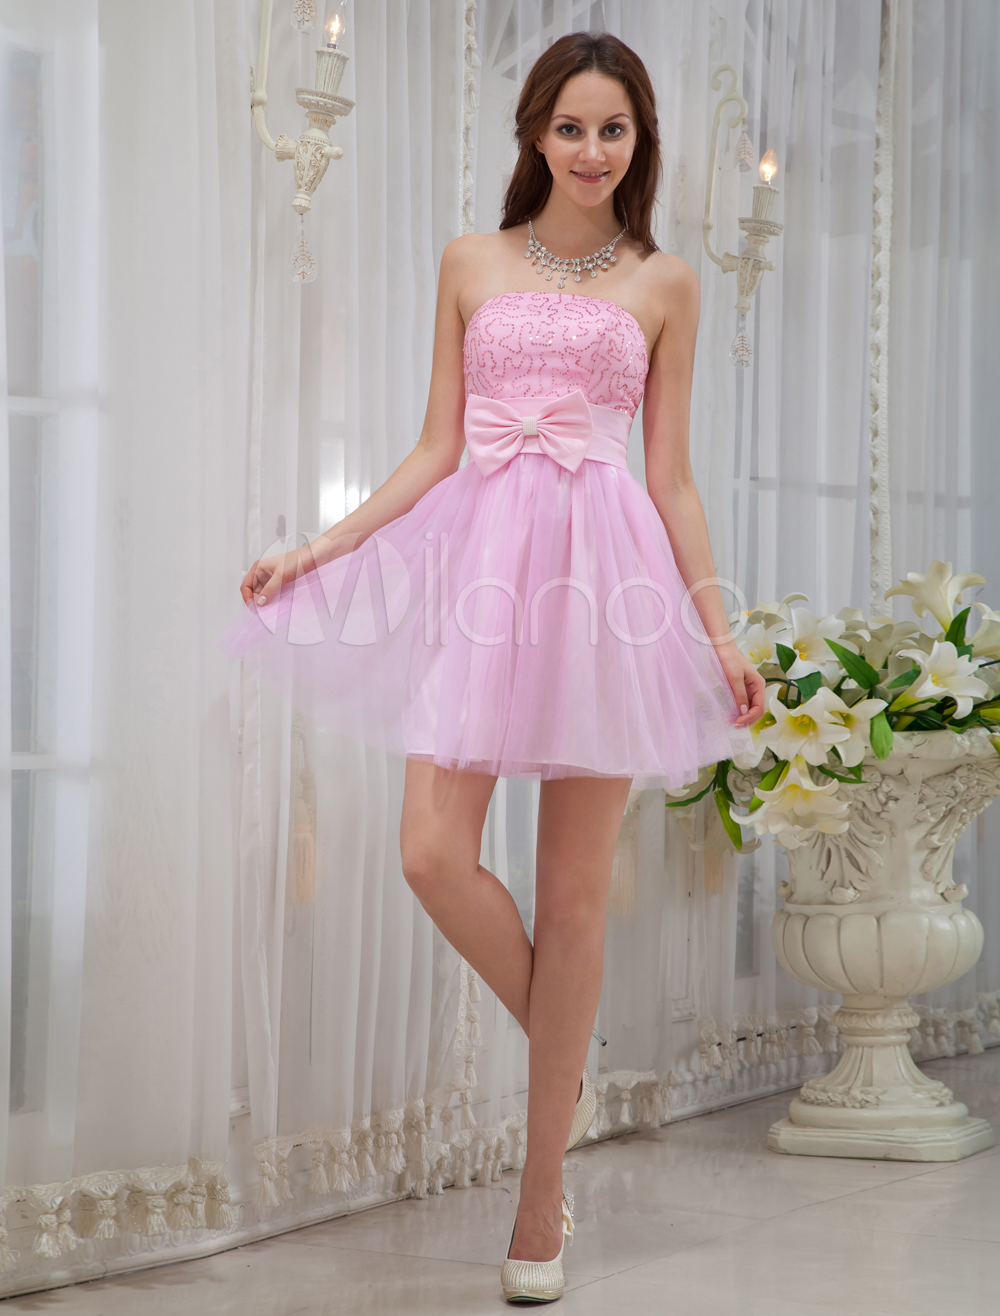 Pink Strapless Sequin Mini Length Tulle Prom Dress (Wedding Cheap Party Dress) photo